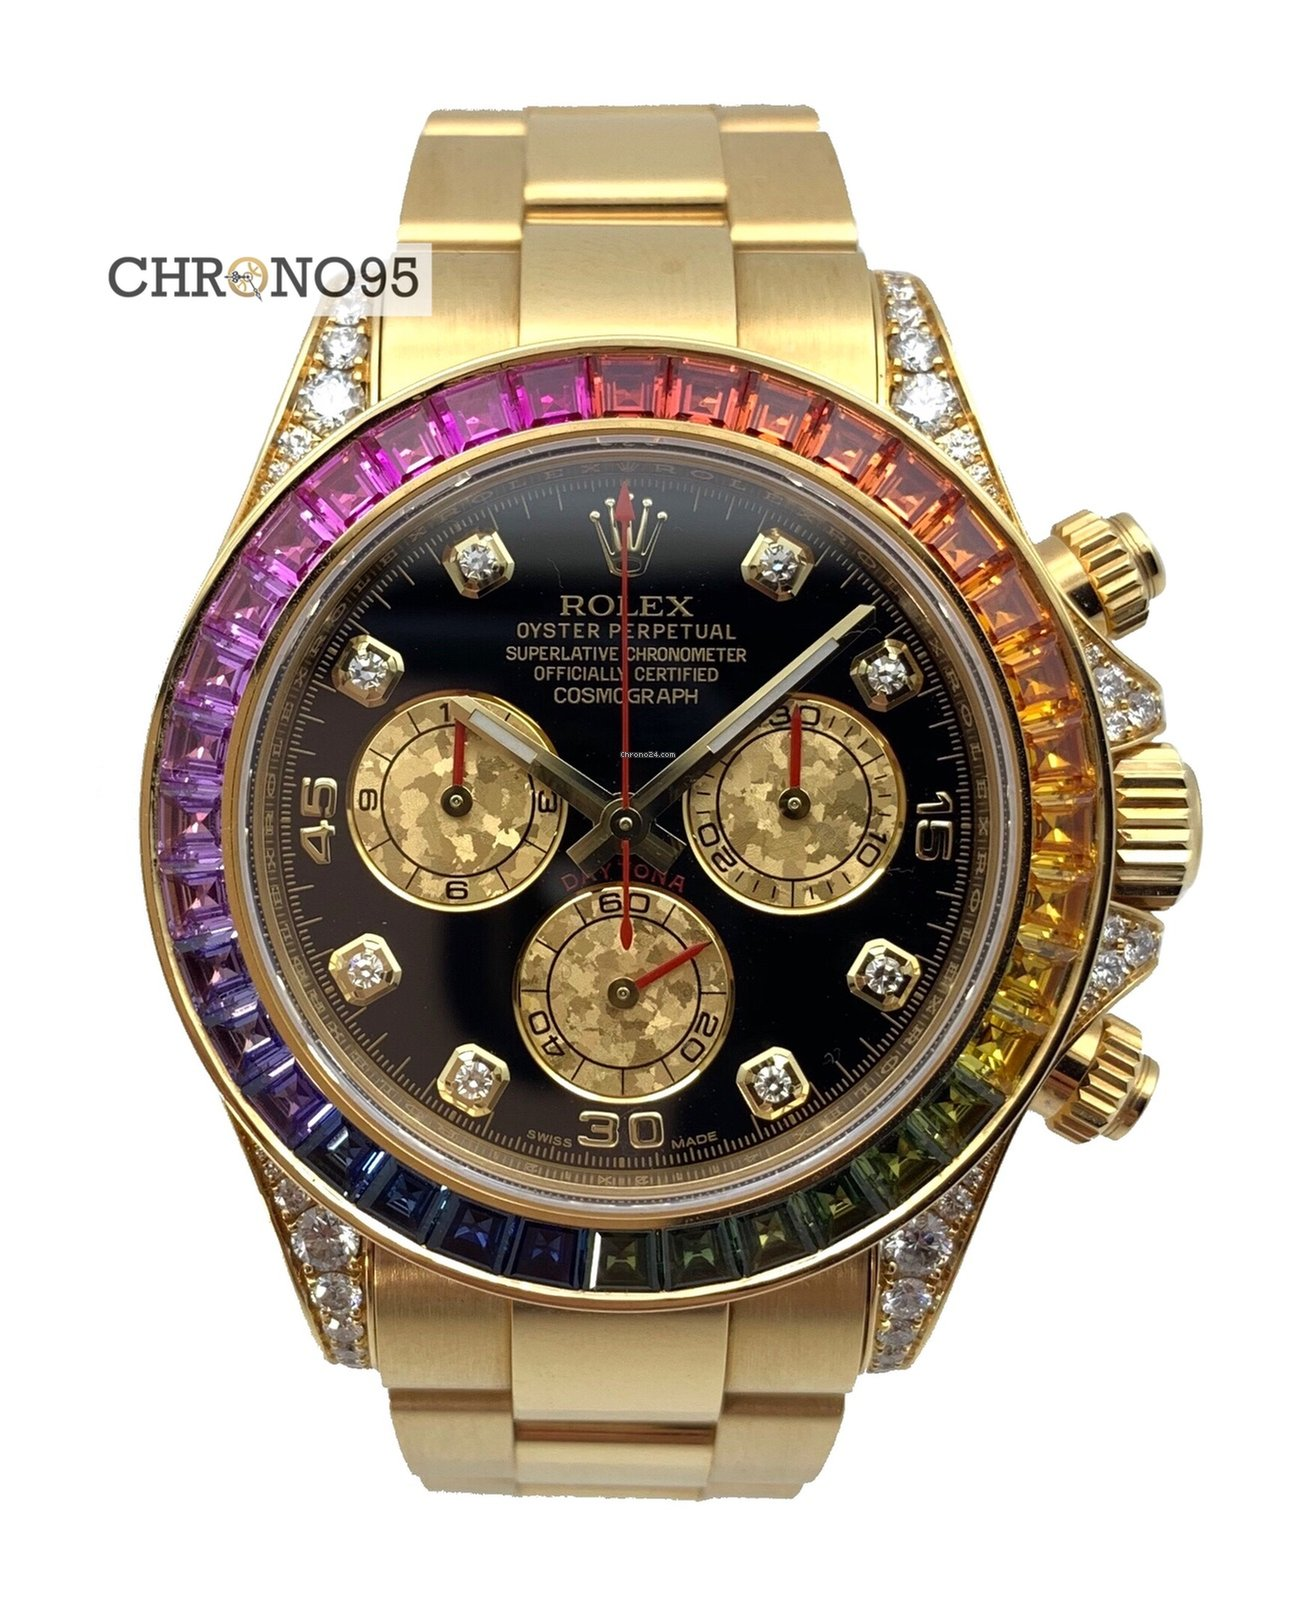 Rolex Oyster Perpetual Cosmograph Daytona 116598RBOW